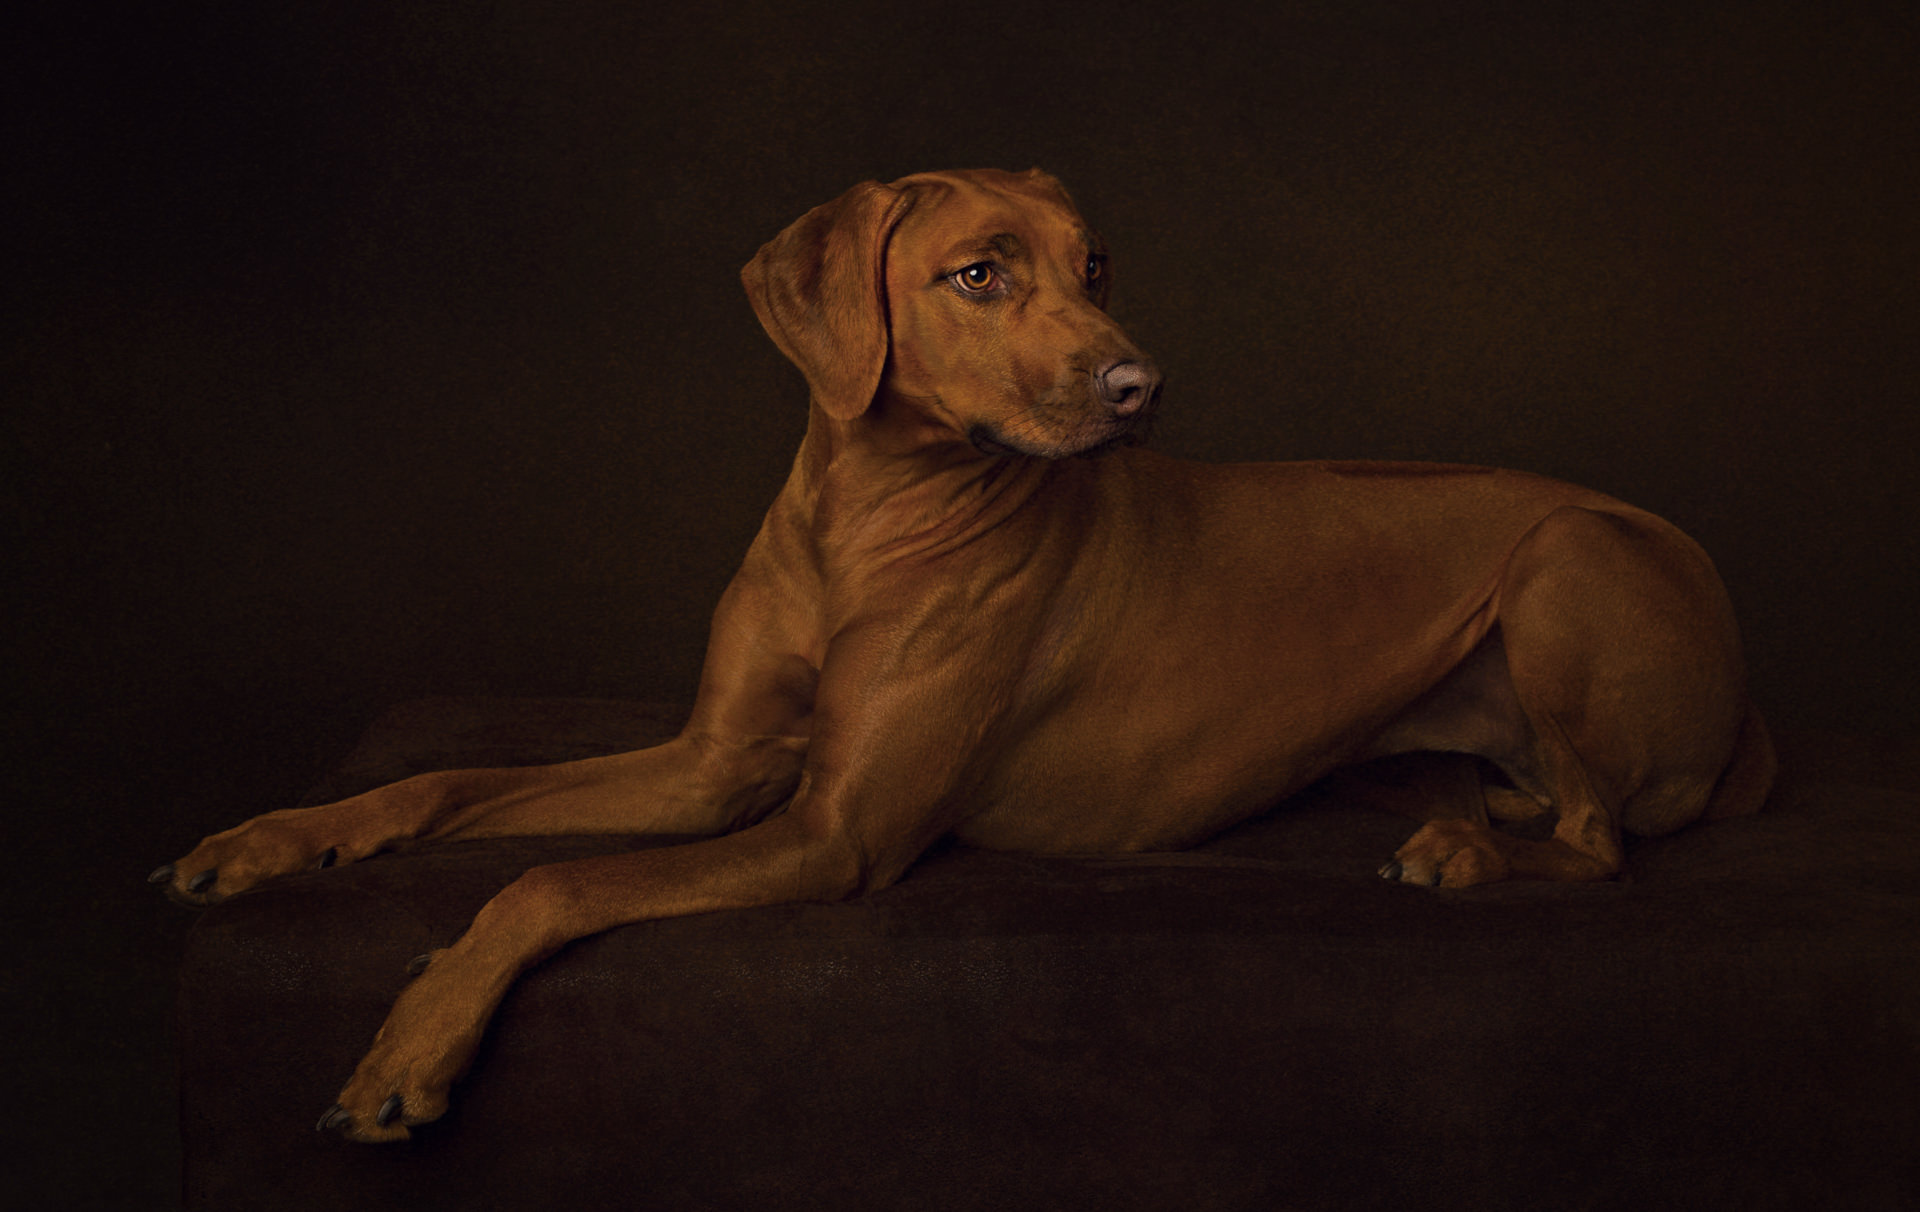 The-Artful-Dog-Studio-Dog-Photographer-19